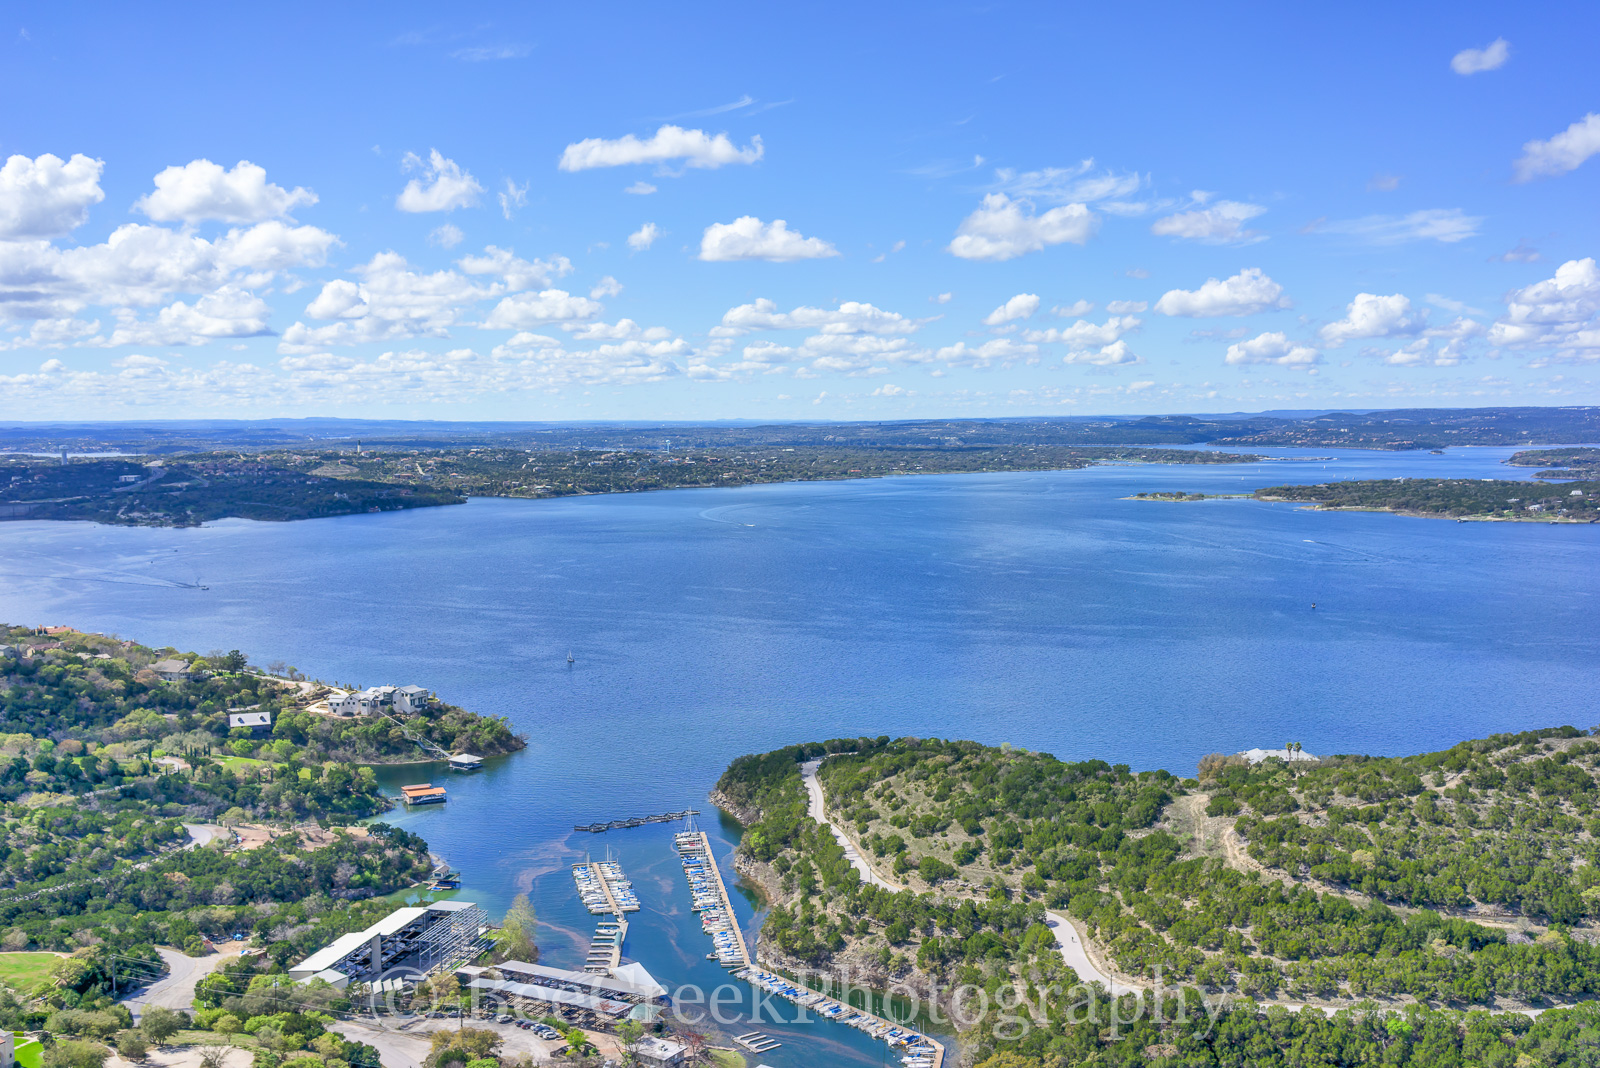 Austin, Lake Travis, aerial, blue sky, boating, clouds, day, lake, laketravis, landscape, marina, recreational, scenic, swimming, view, water sports, photo